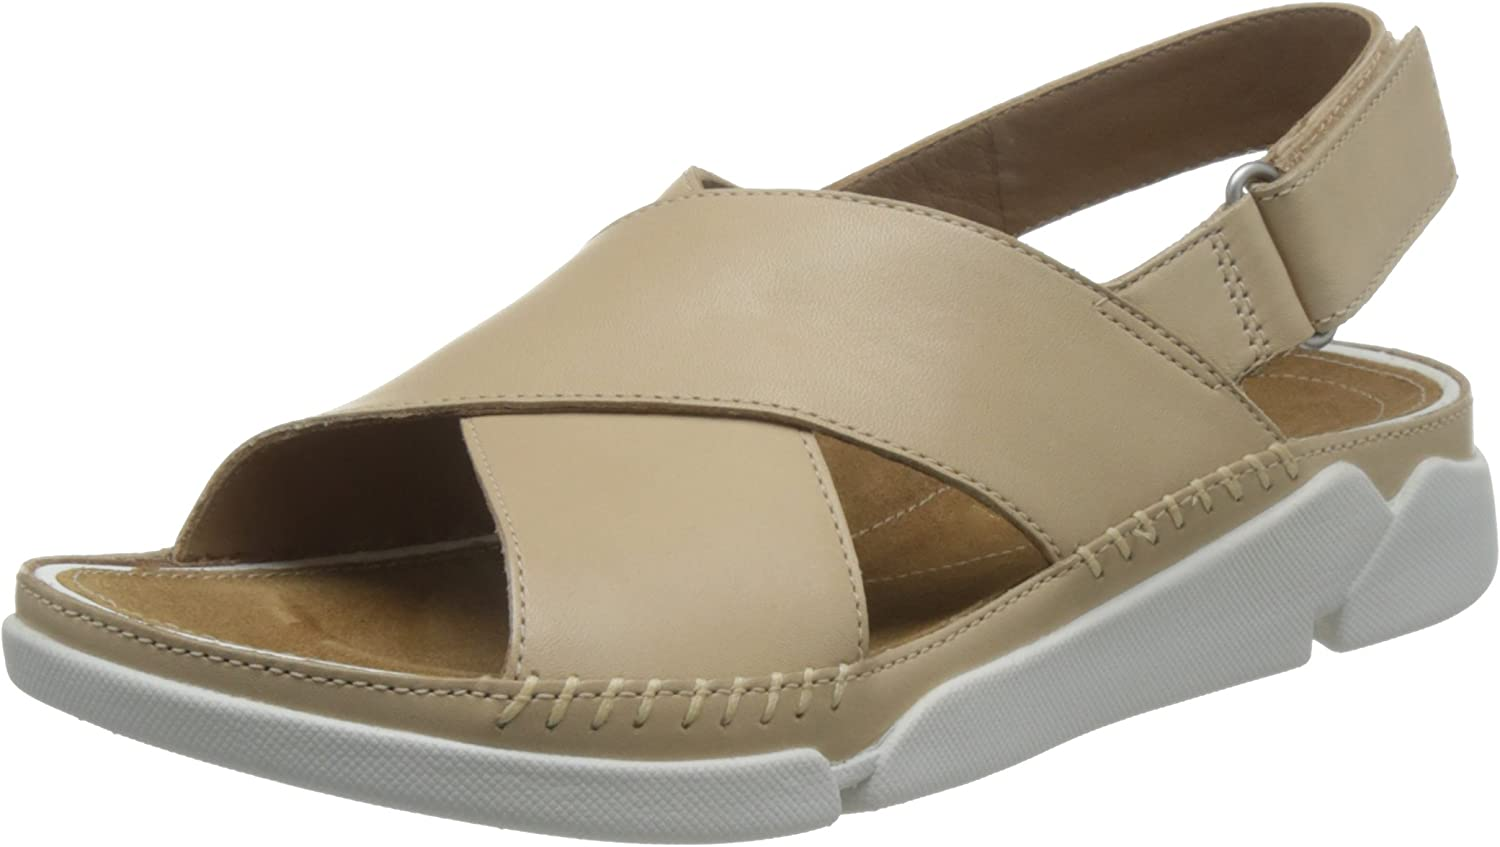 Clarks Tri Alexia - Nude (Leather) Womens Sandals